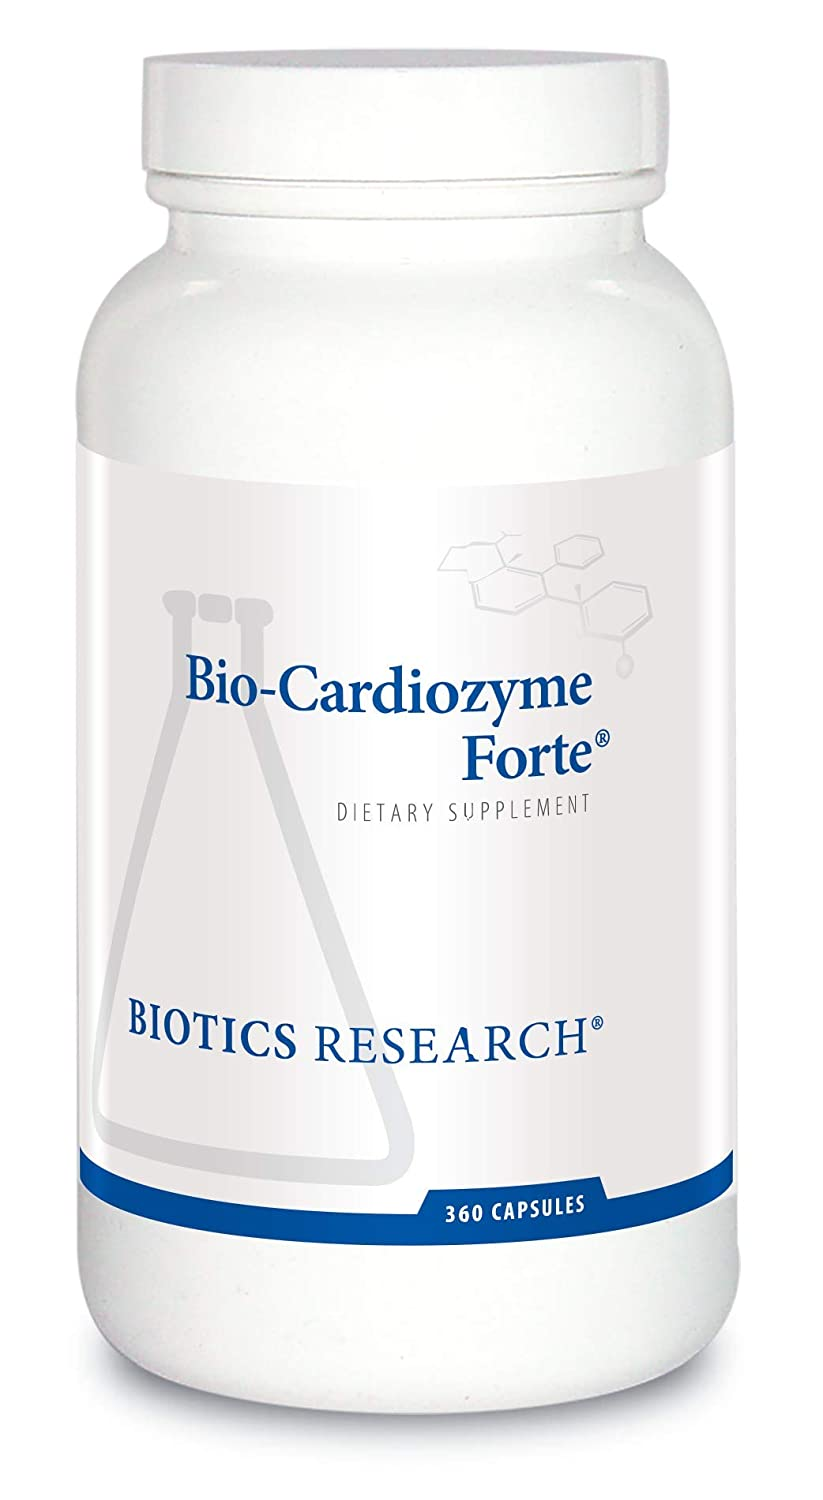 Biotics Research Bio-Cardiozyme Forte Healthy Heart Multivitamin. Broad-Spectrum Formulation Designed to Support Cardiovascular Health and Function. Powerful antioxidant Support 360 Caps